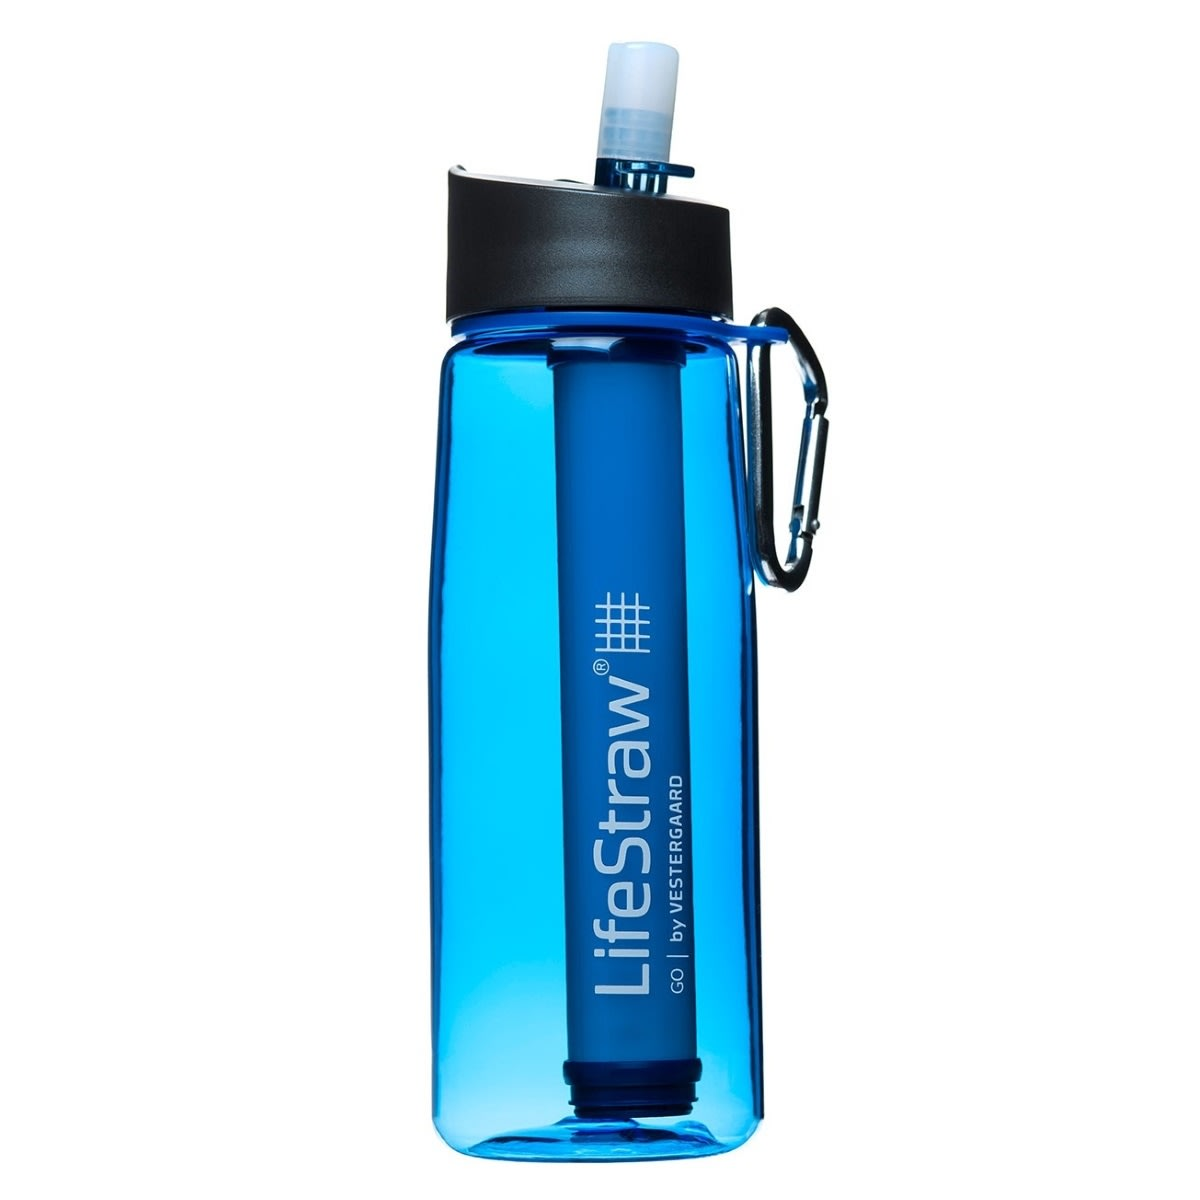 Lifestraw Go bottle with filter